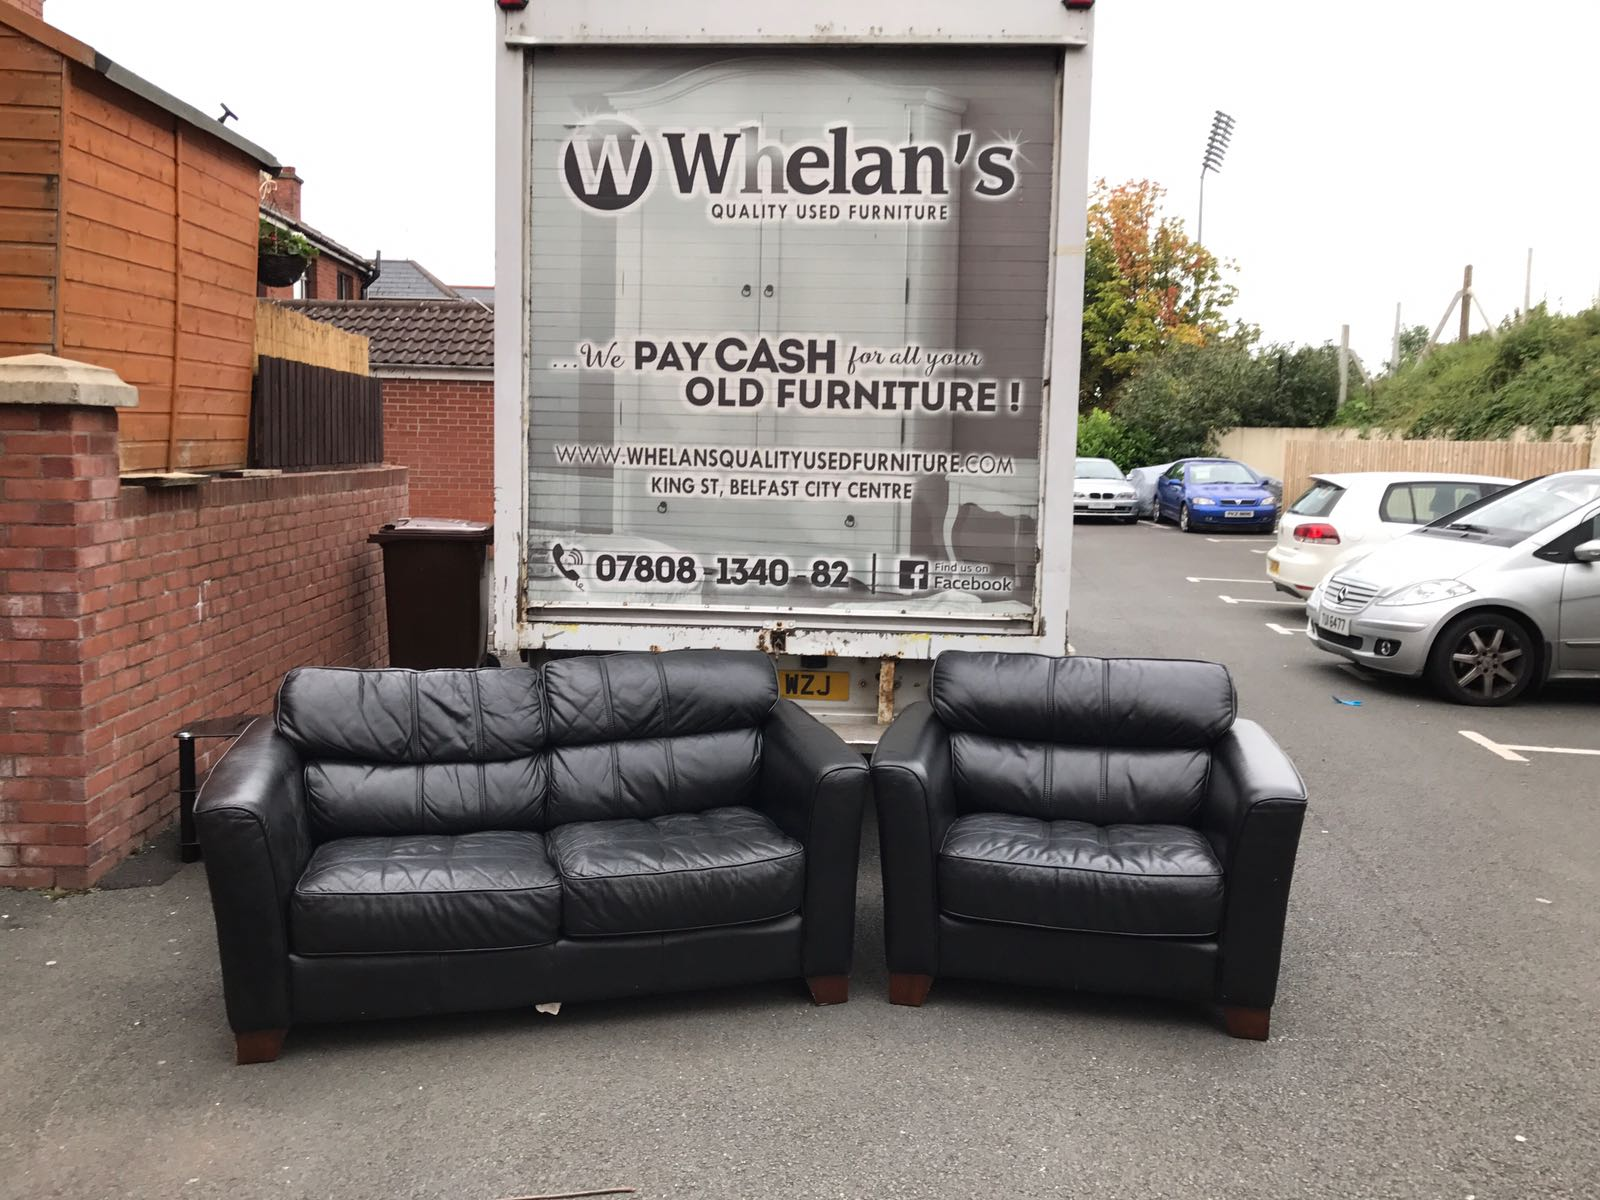 Whelans Quality Used Furniture